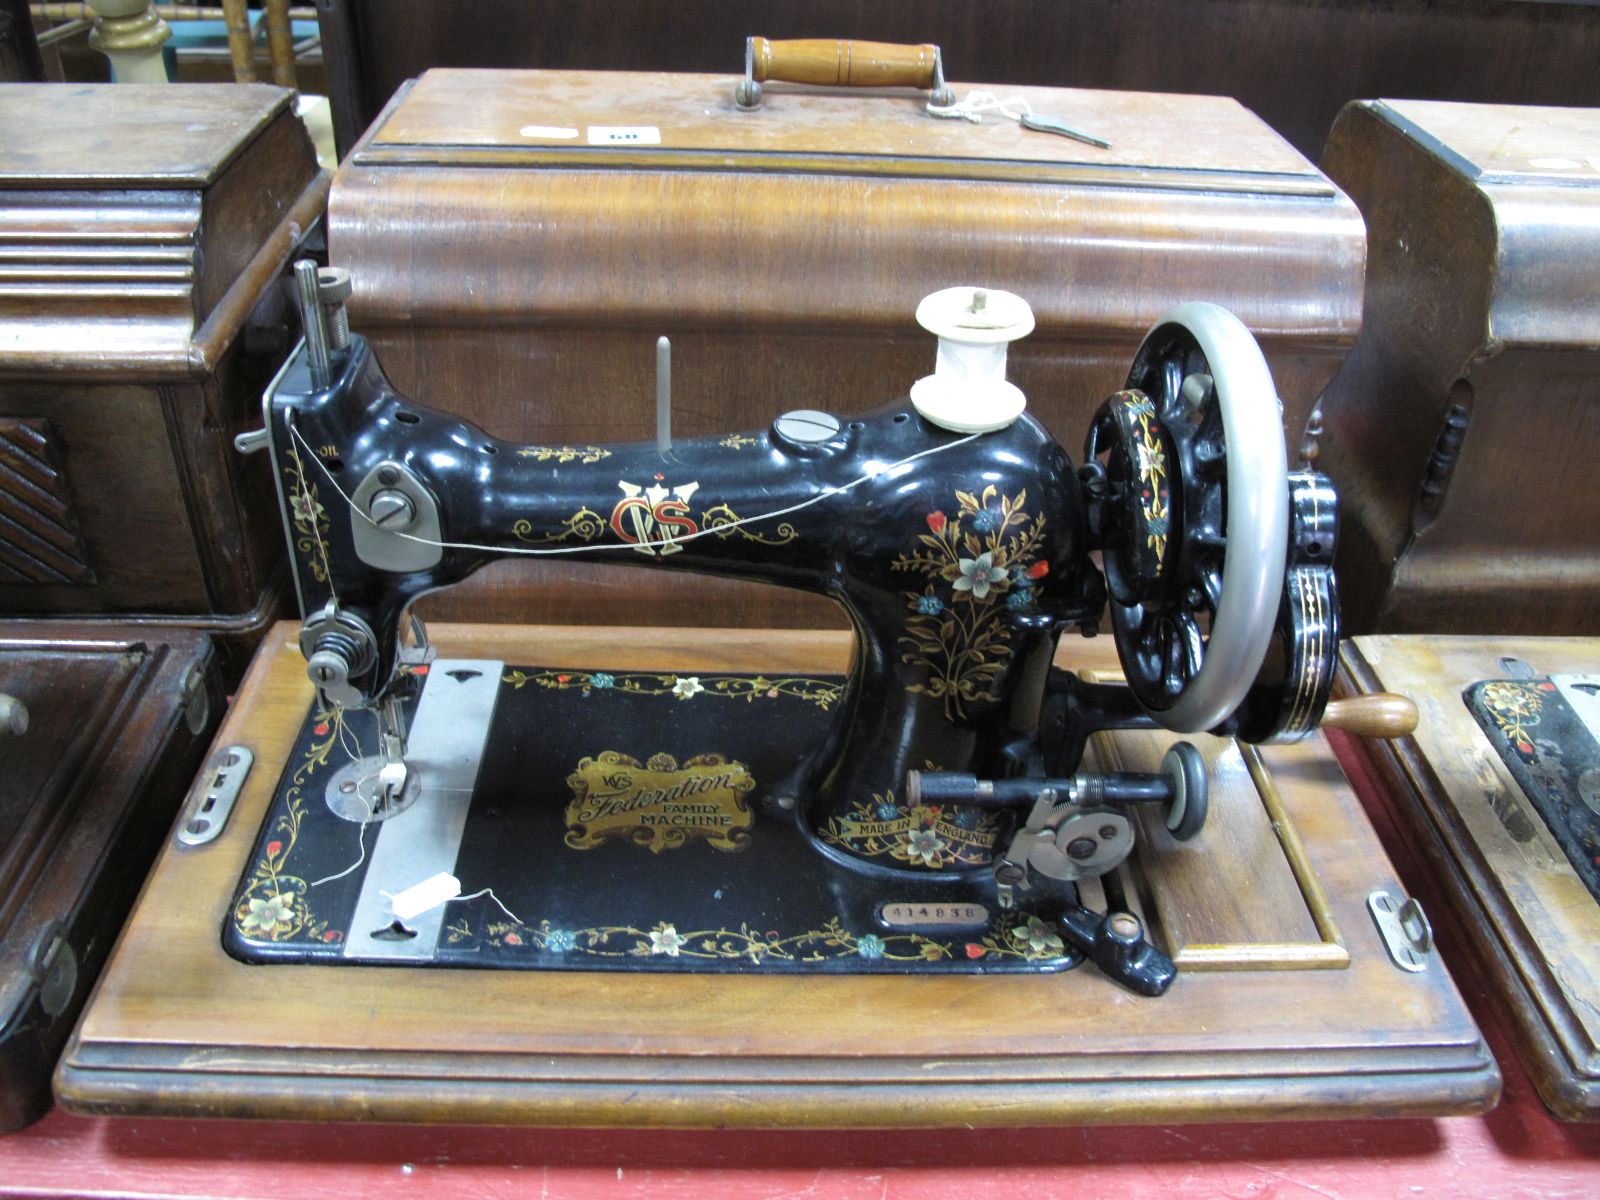 """Lot 60 - An Early XX Century CWS """"Federation Family Machine"""" Sewing Machine, numbered 414838, in walnut case."""